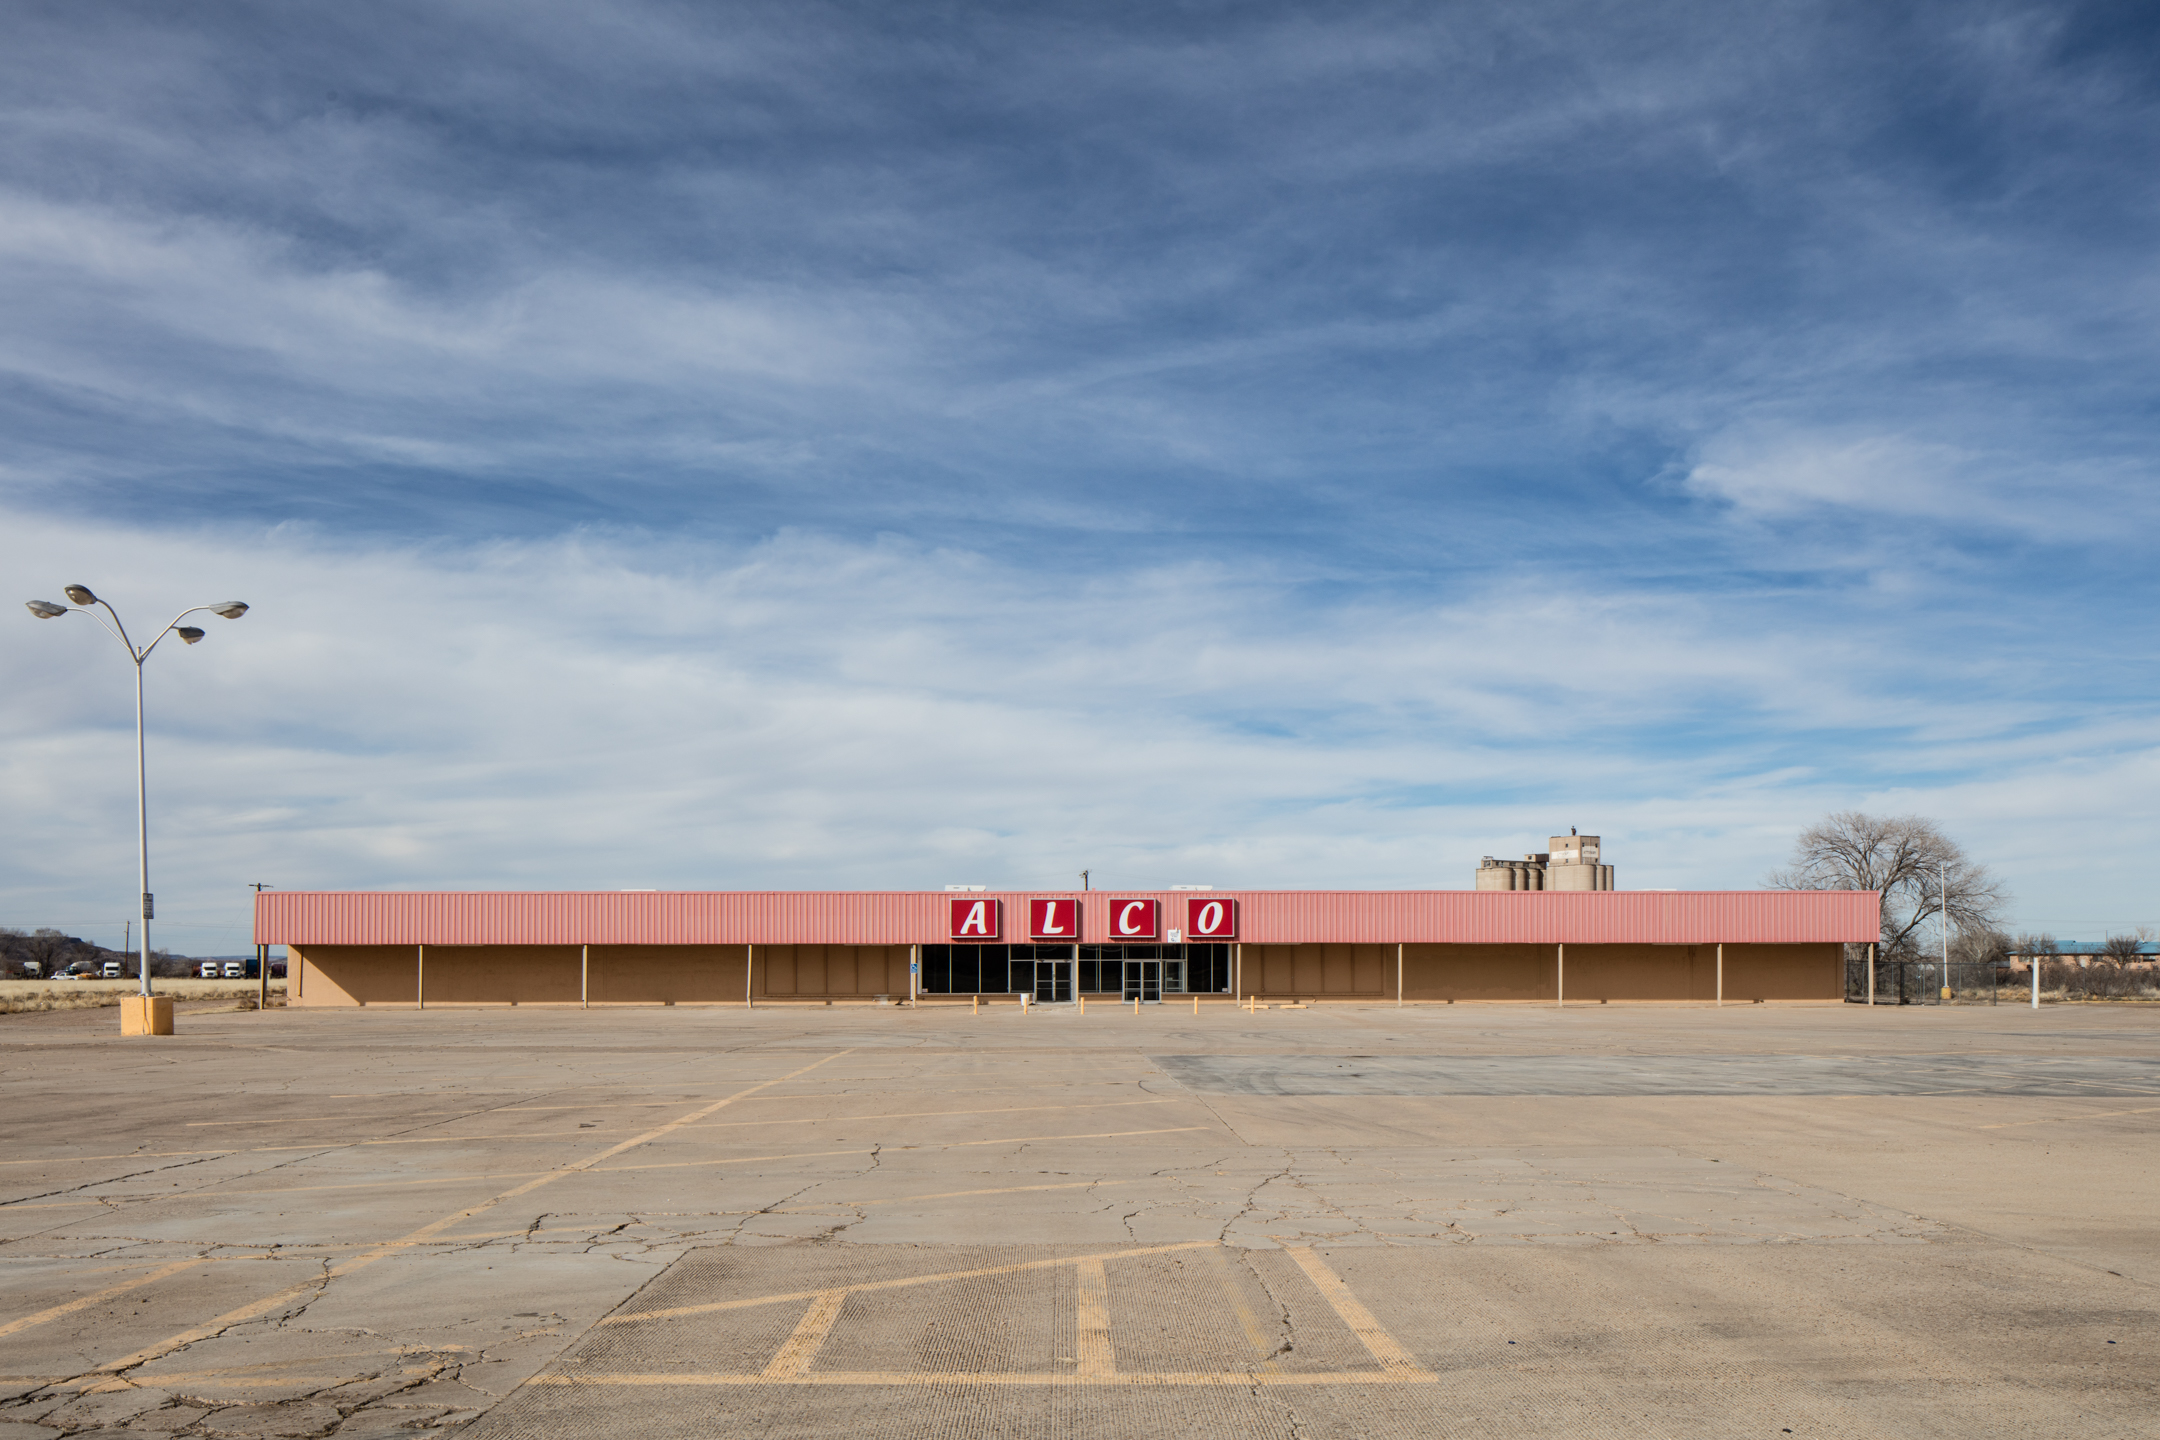 Alco, Tucumcari, New Mexico, February 18, 2017